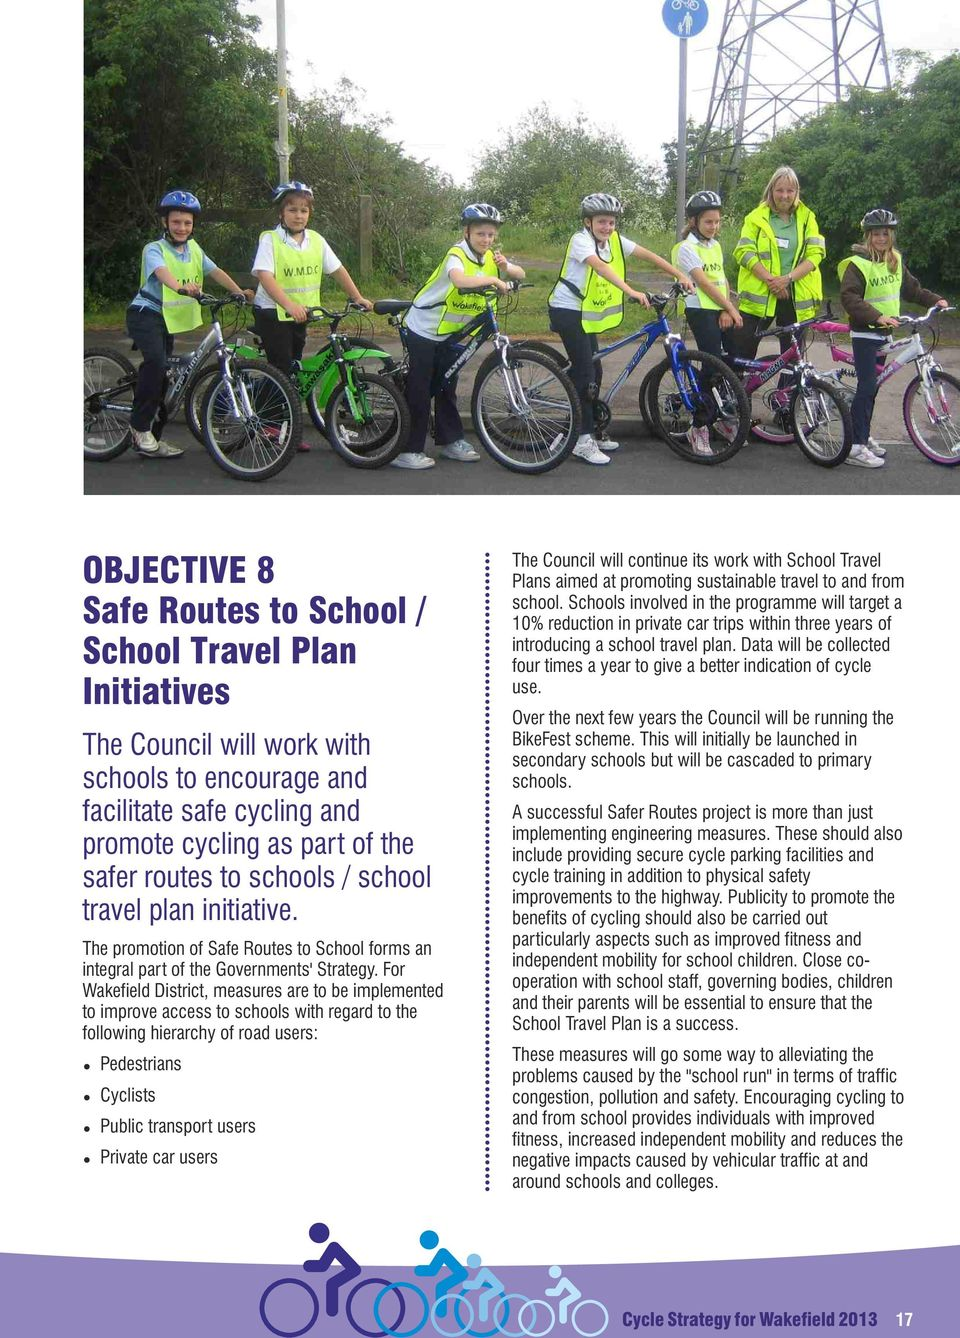 For Wakefield District, measures are to be implemented to improve access to schools with regard to the following hierarchy of road users: Pedestrians Cyclists Public transport users Private car users.